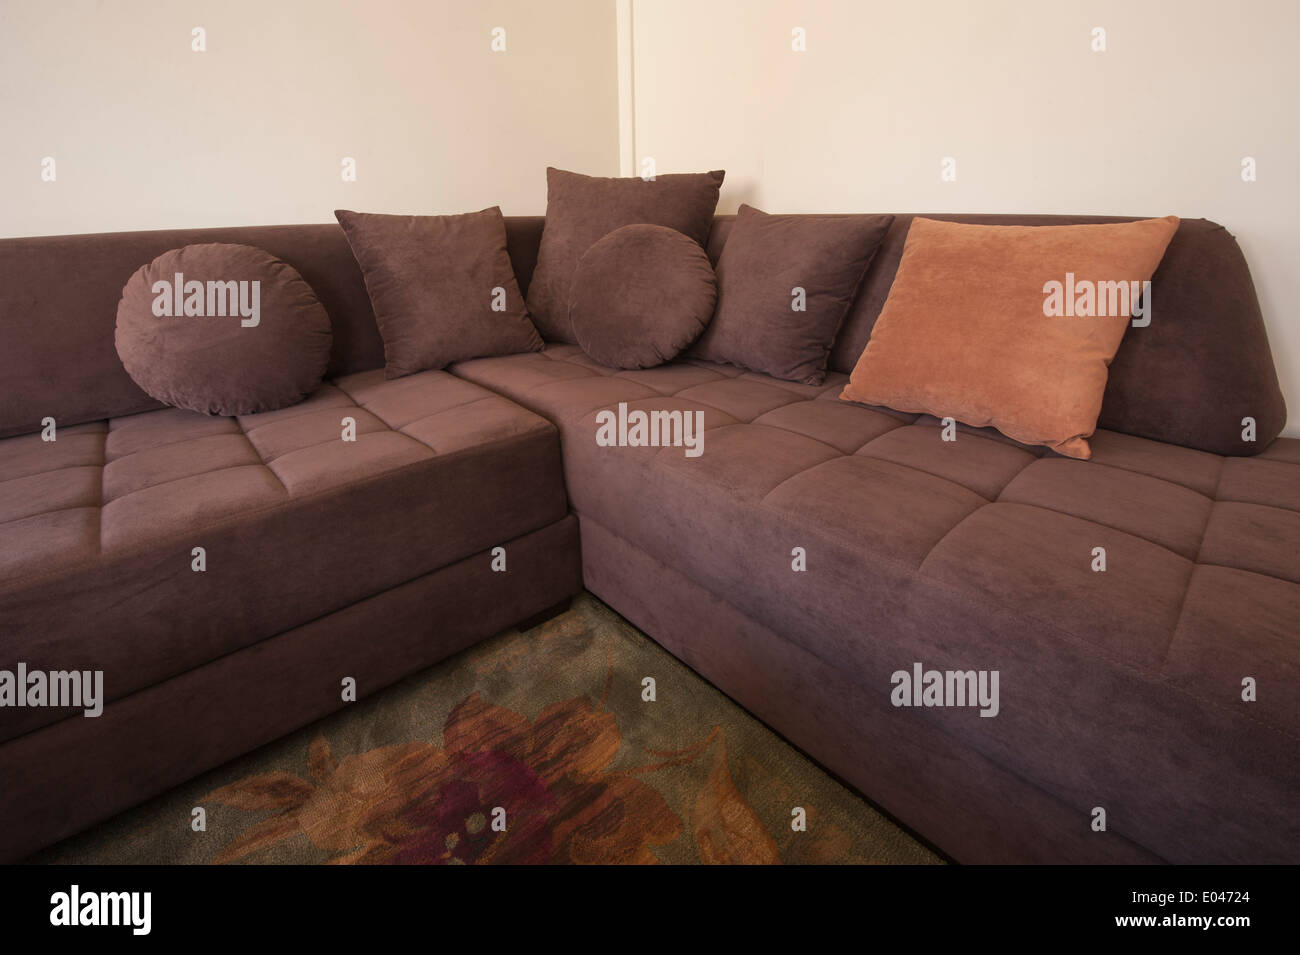 L Shaped Sofa High Resolution Stock Photography And Images Alamy